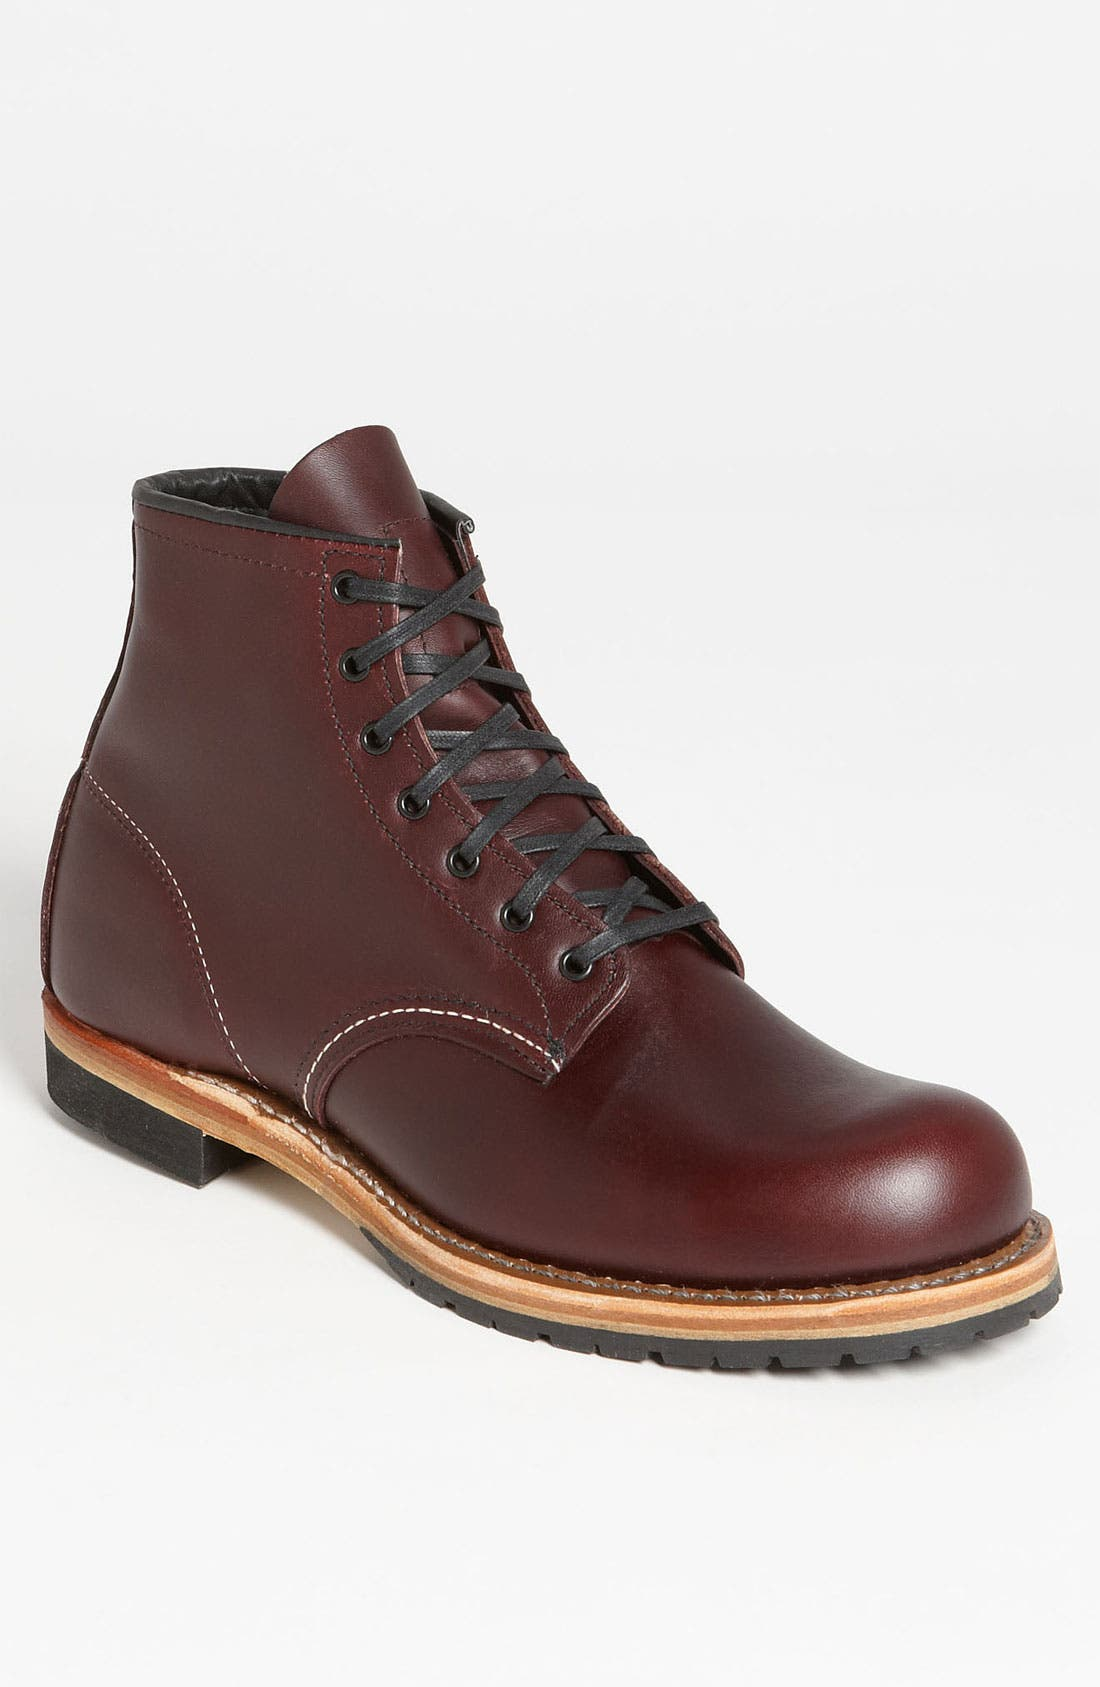 Main Image - Red Wing 'Beckman' Round Toe Boot (Online Exclusive)